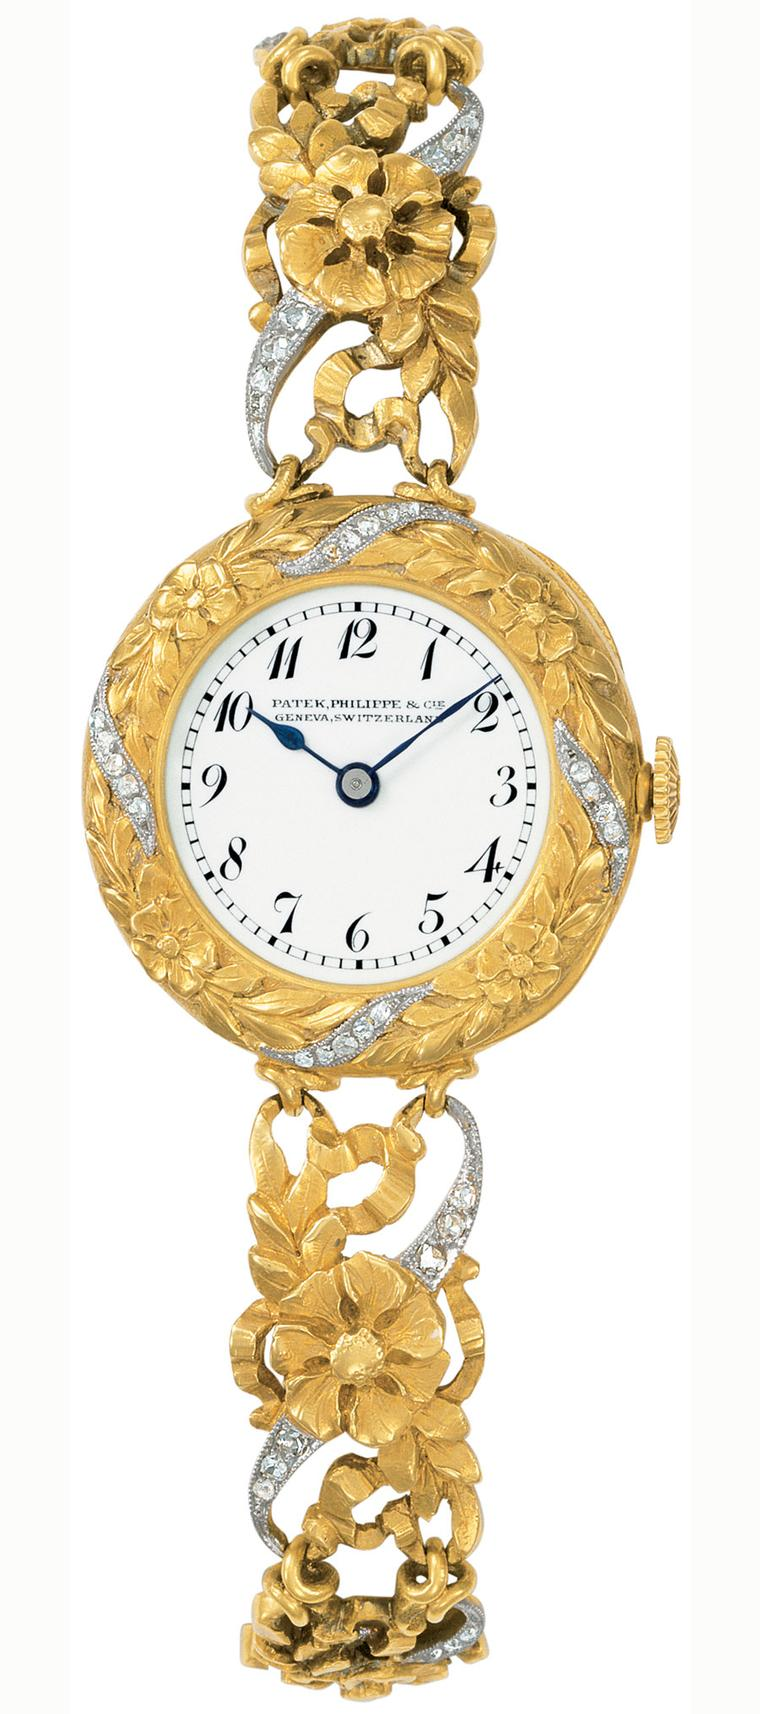 Patek-Philippe-P0283_a_200_collection-1910-15